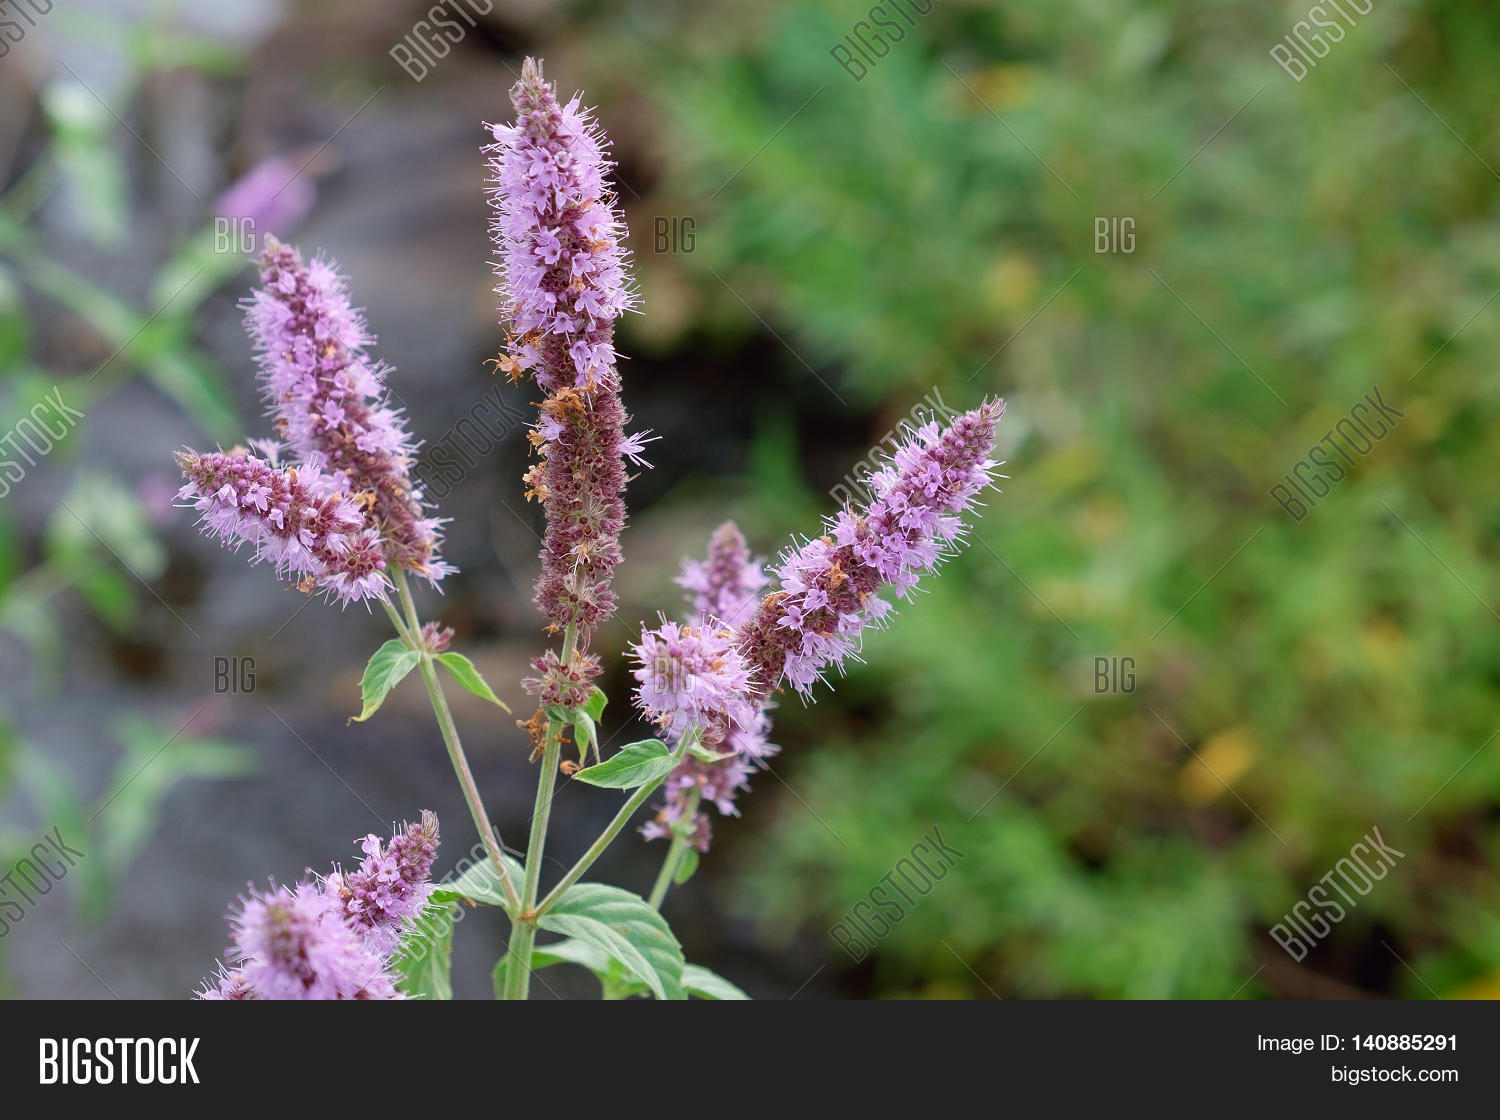 Peppermint Plant Flower In Sunlight Day Stock Photo ...